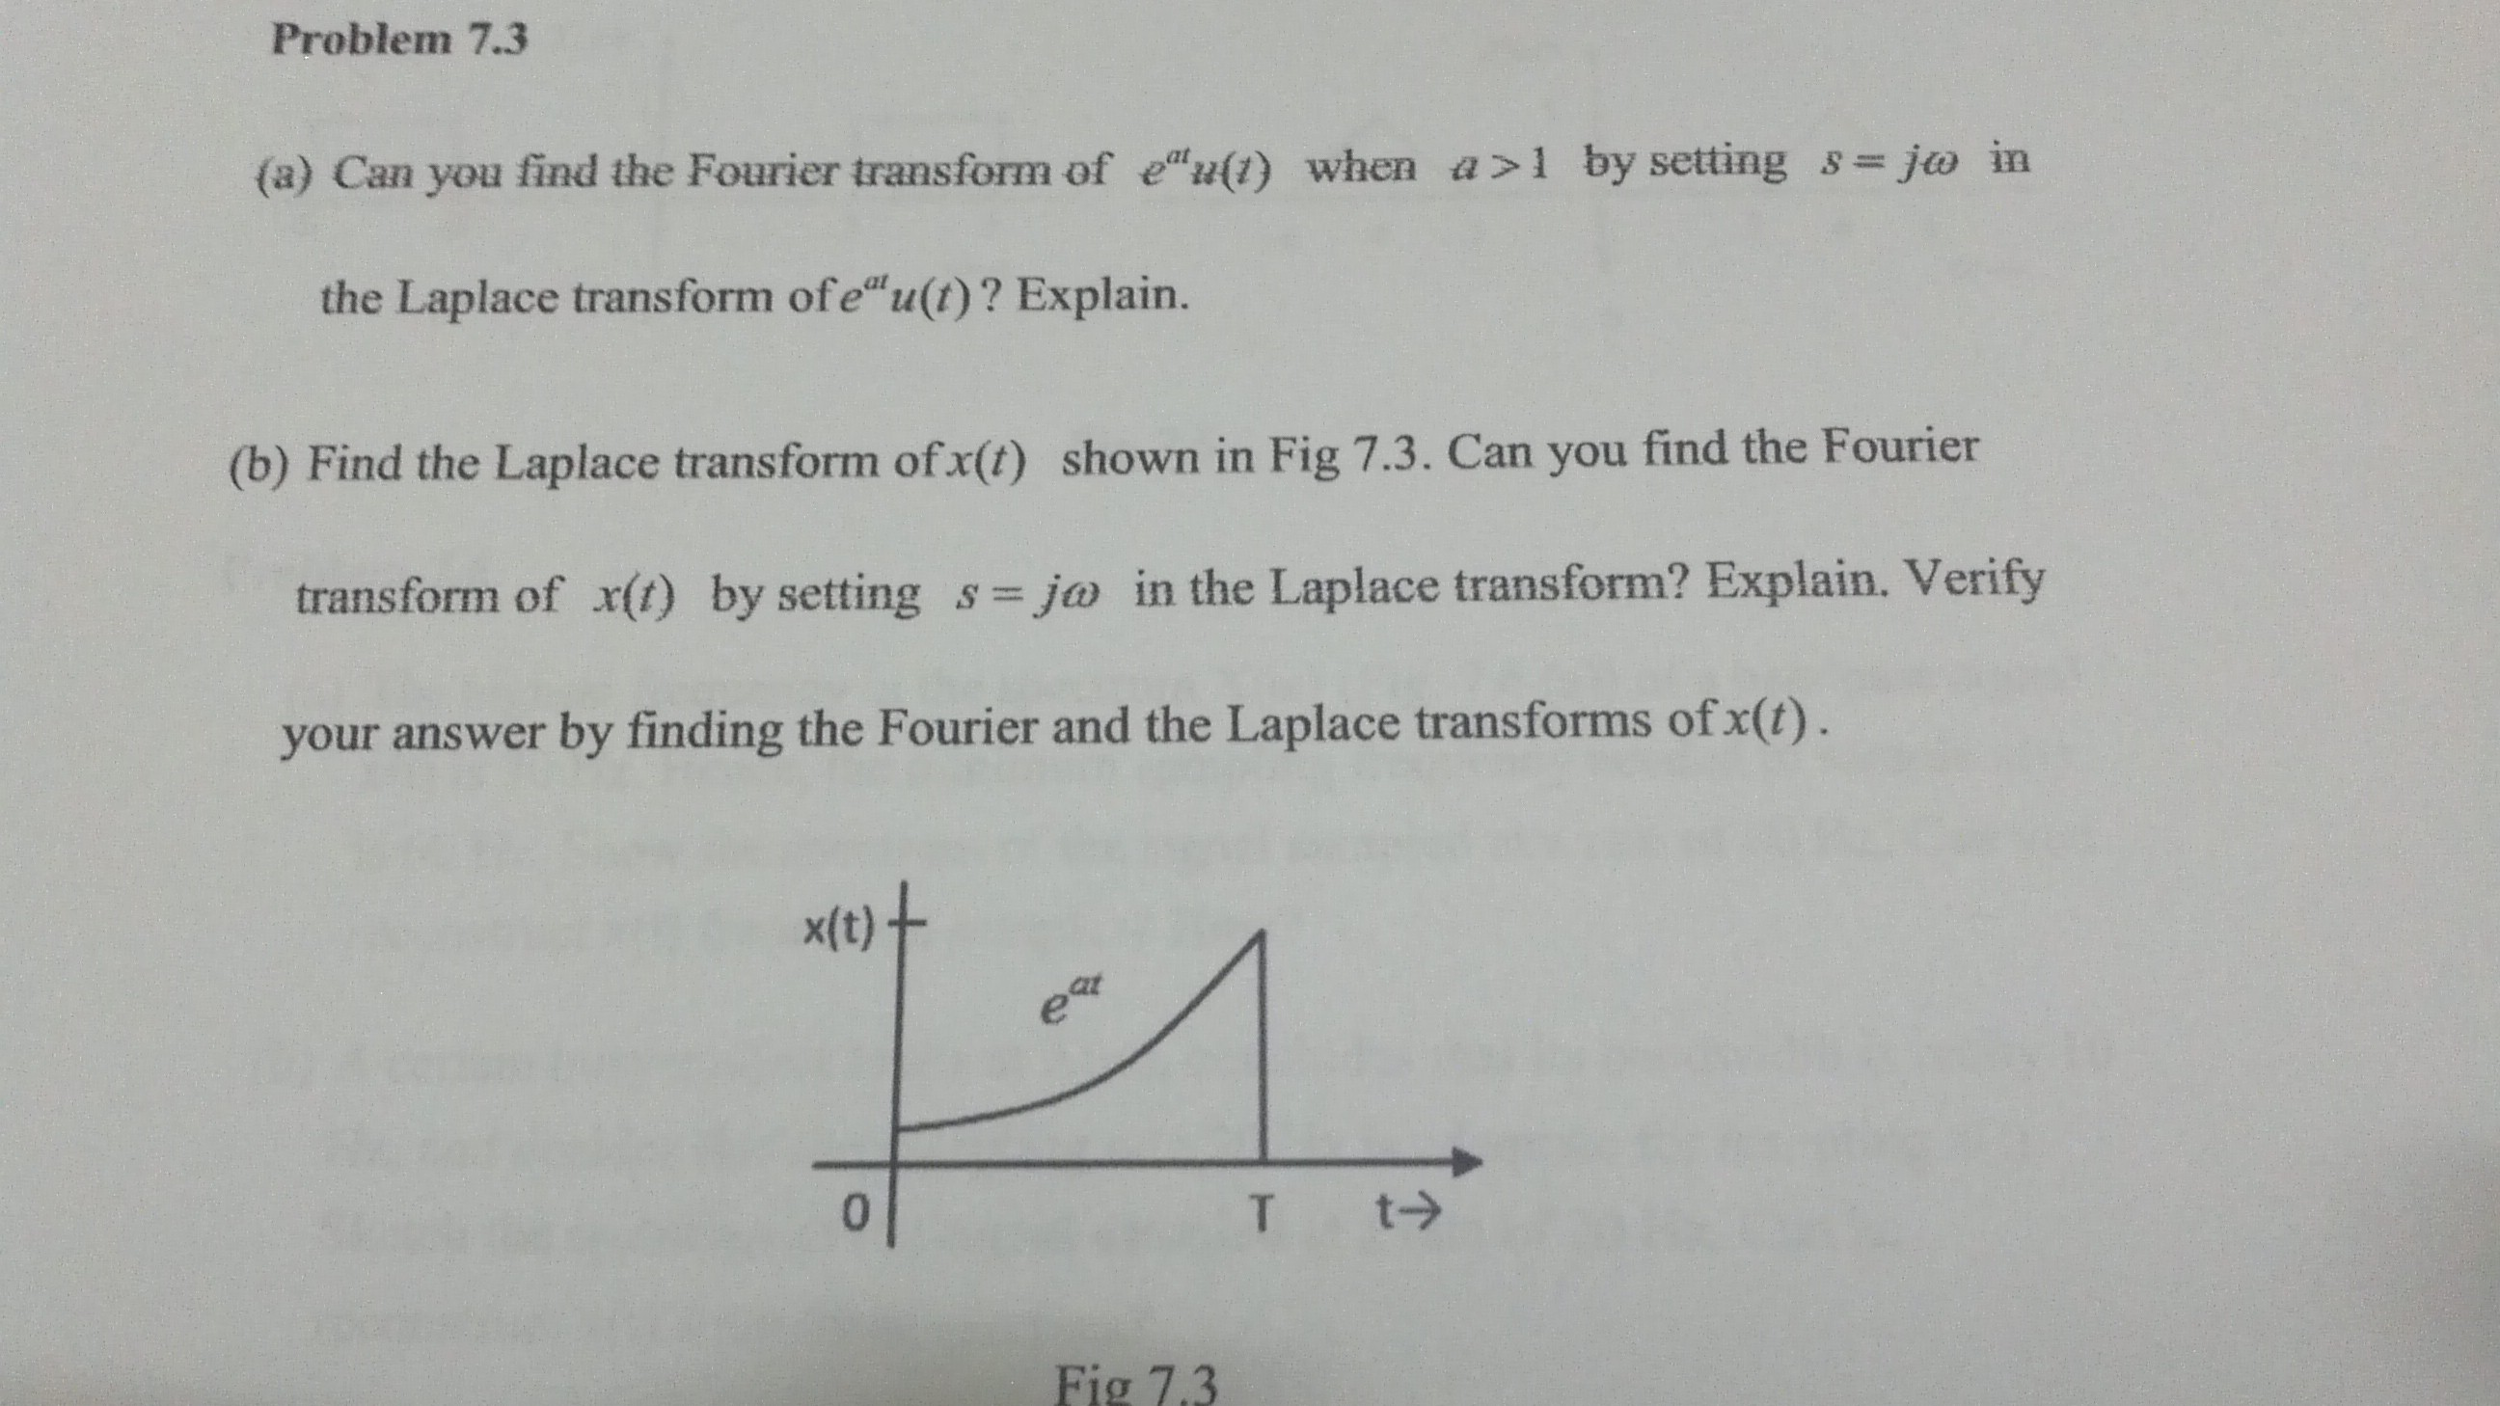 Can you find the Fourier transform of eat u(t) whe